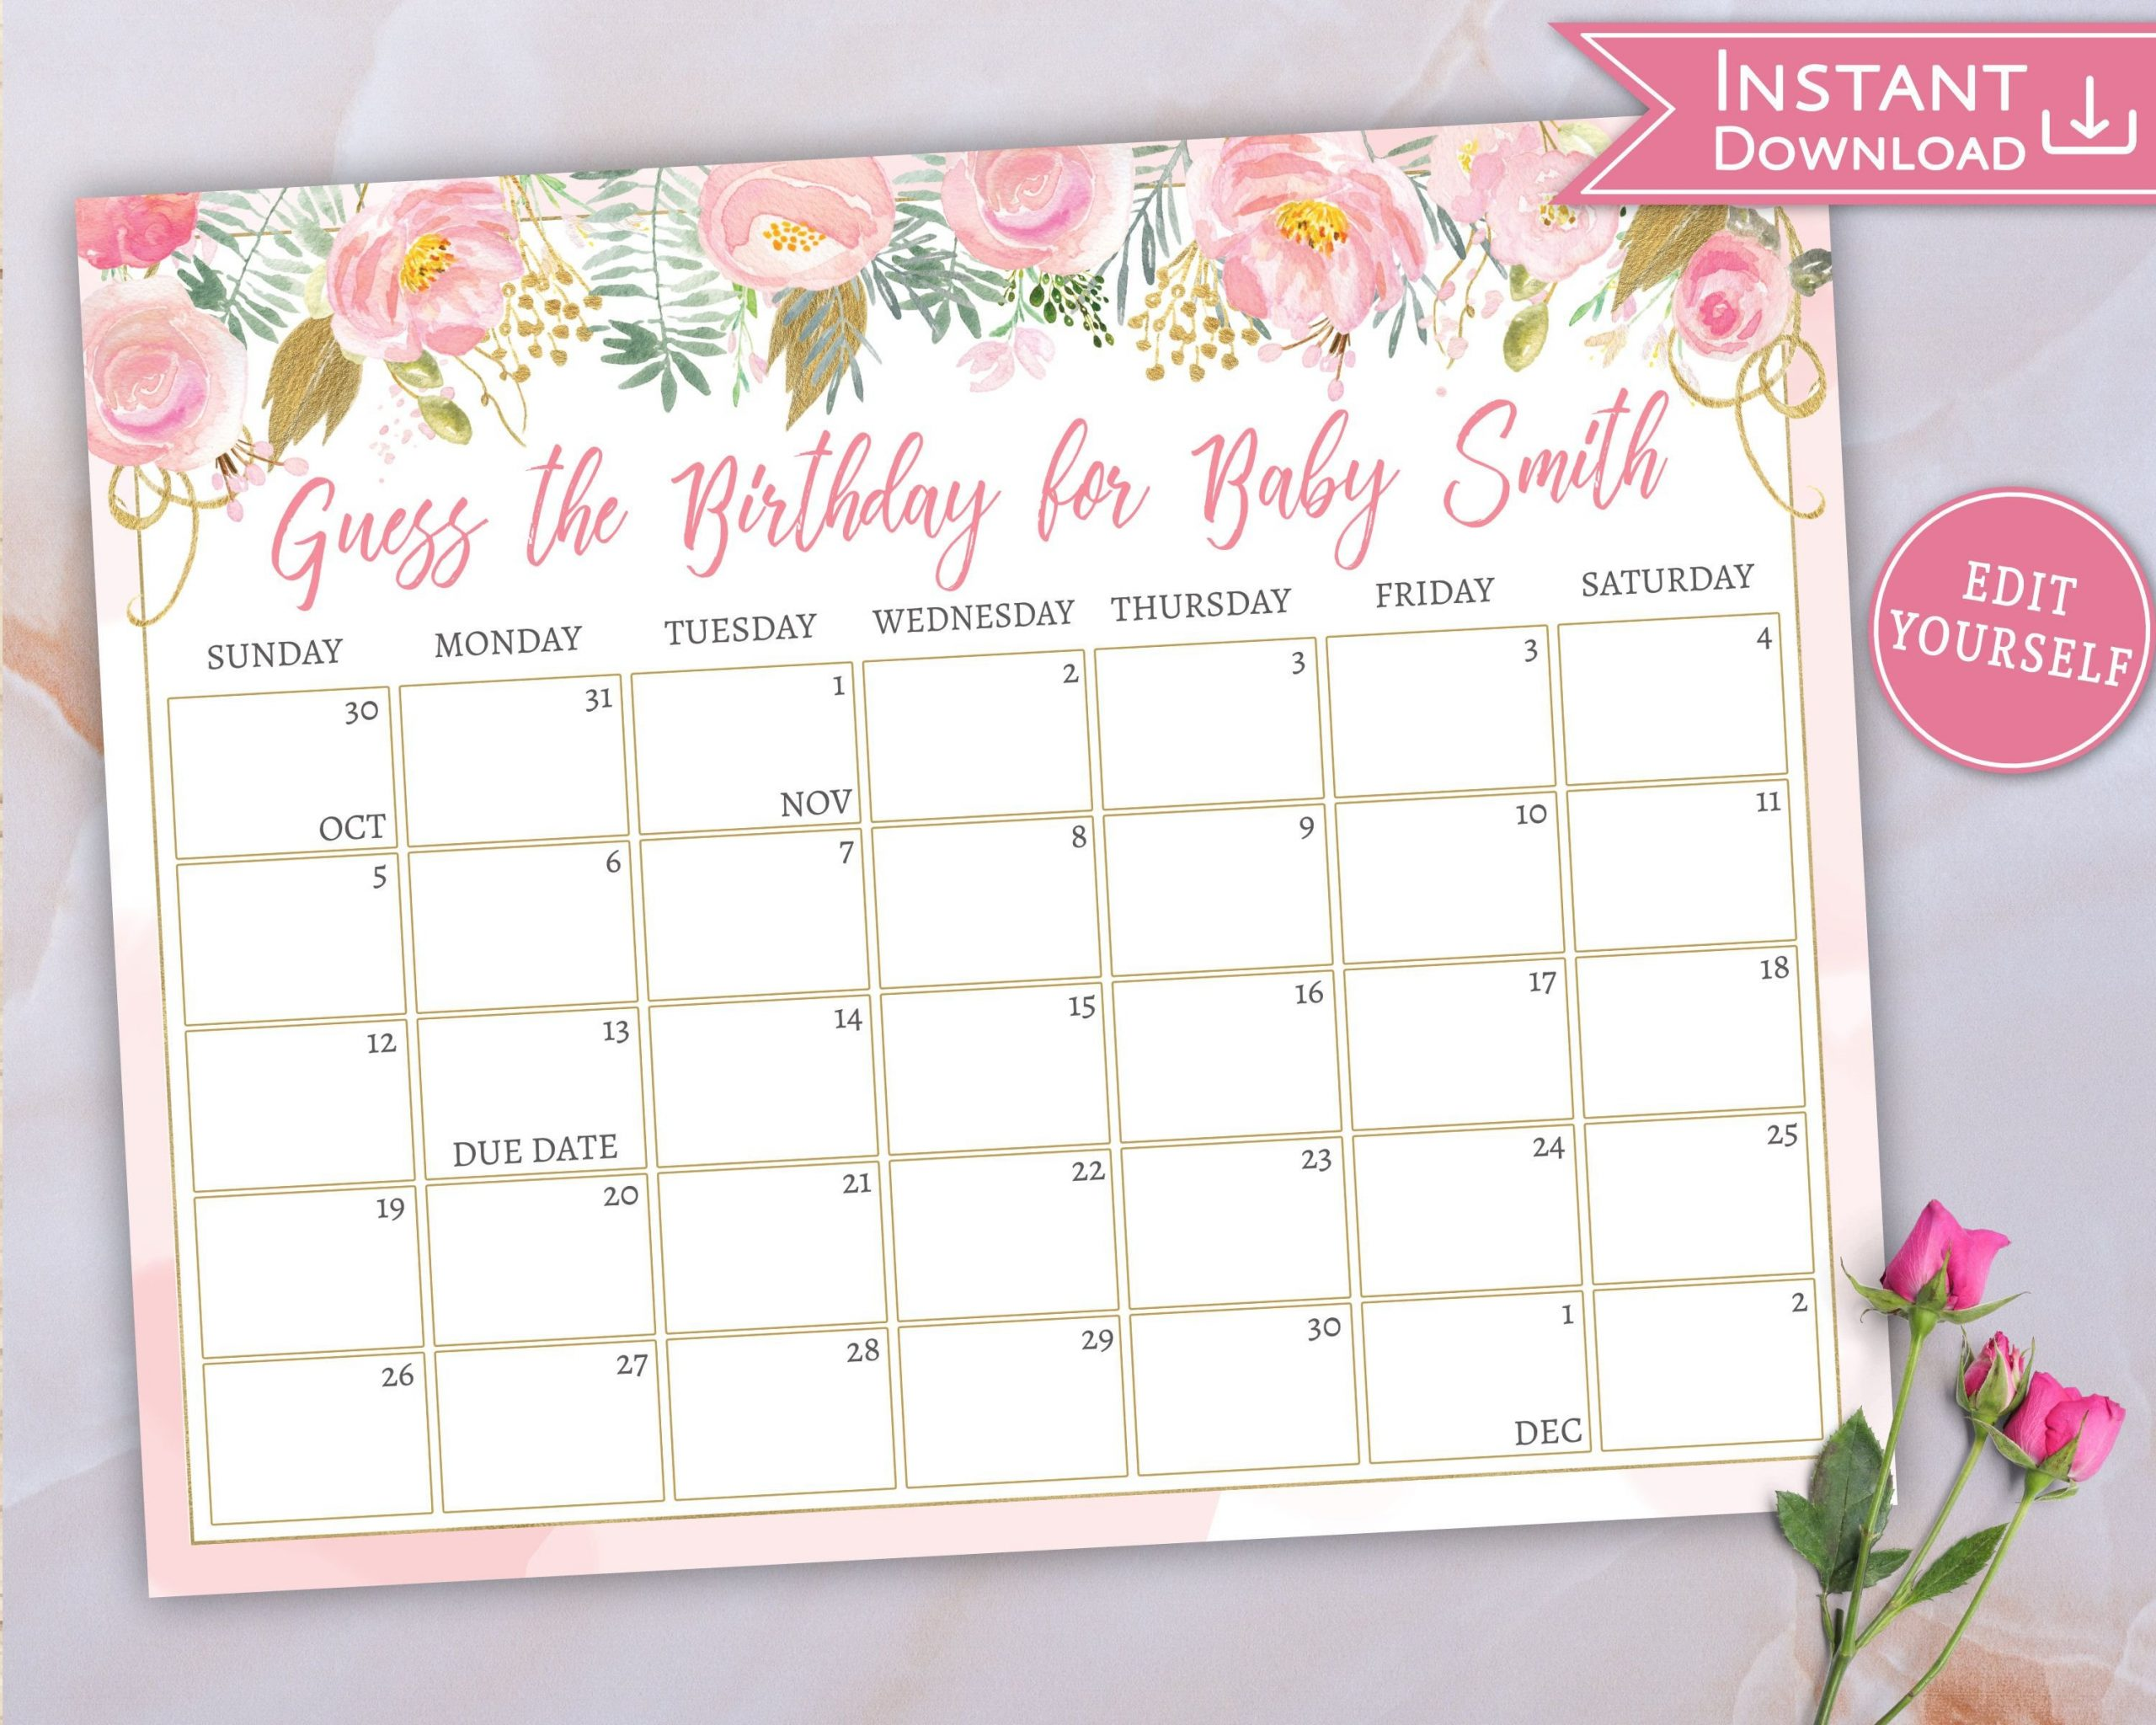 Baby Due Date Calendar, Guess Baby'S Birthday, Floral Pink Pick The Due Date Calendar Template Free